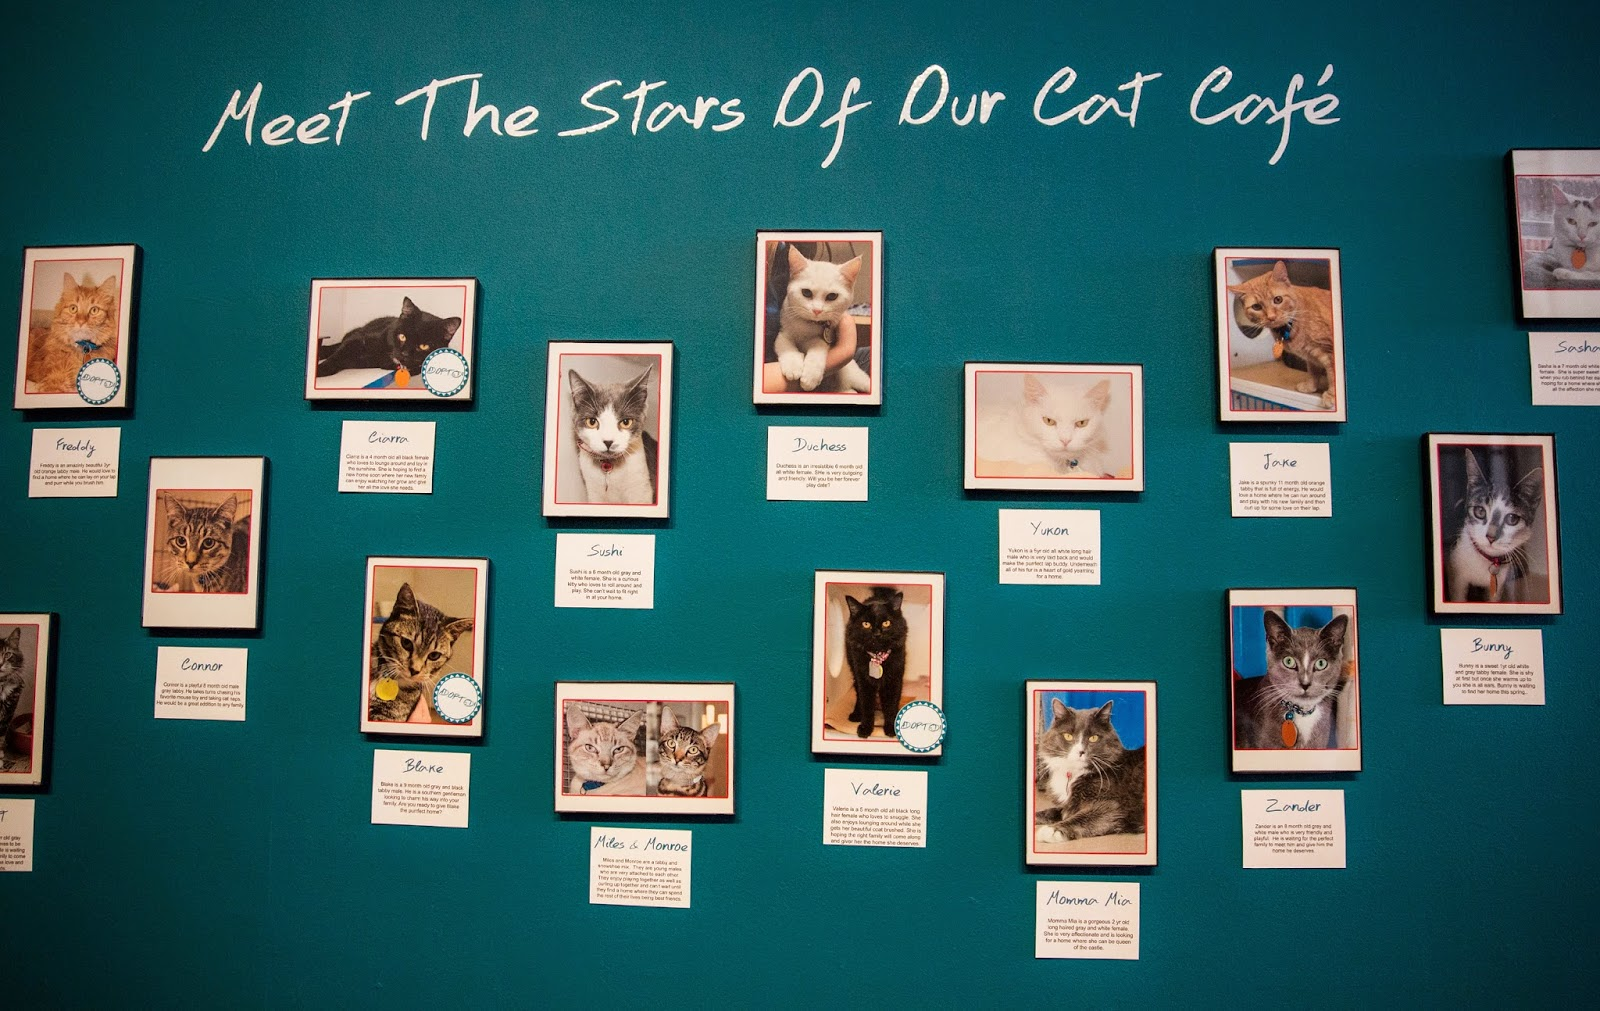 Adoptable Cats, America, Animals, Business, Cats, Cats Cafe Shop, Cats Shop, Economy, New York, Pets, Pop up Cats Cafe, US,